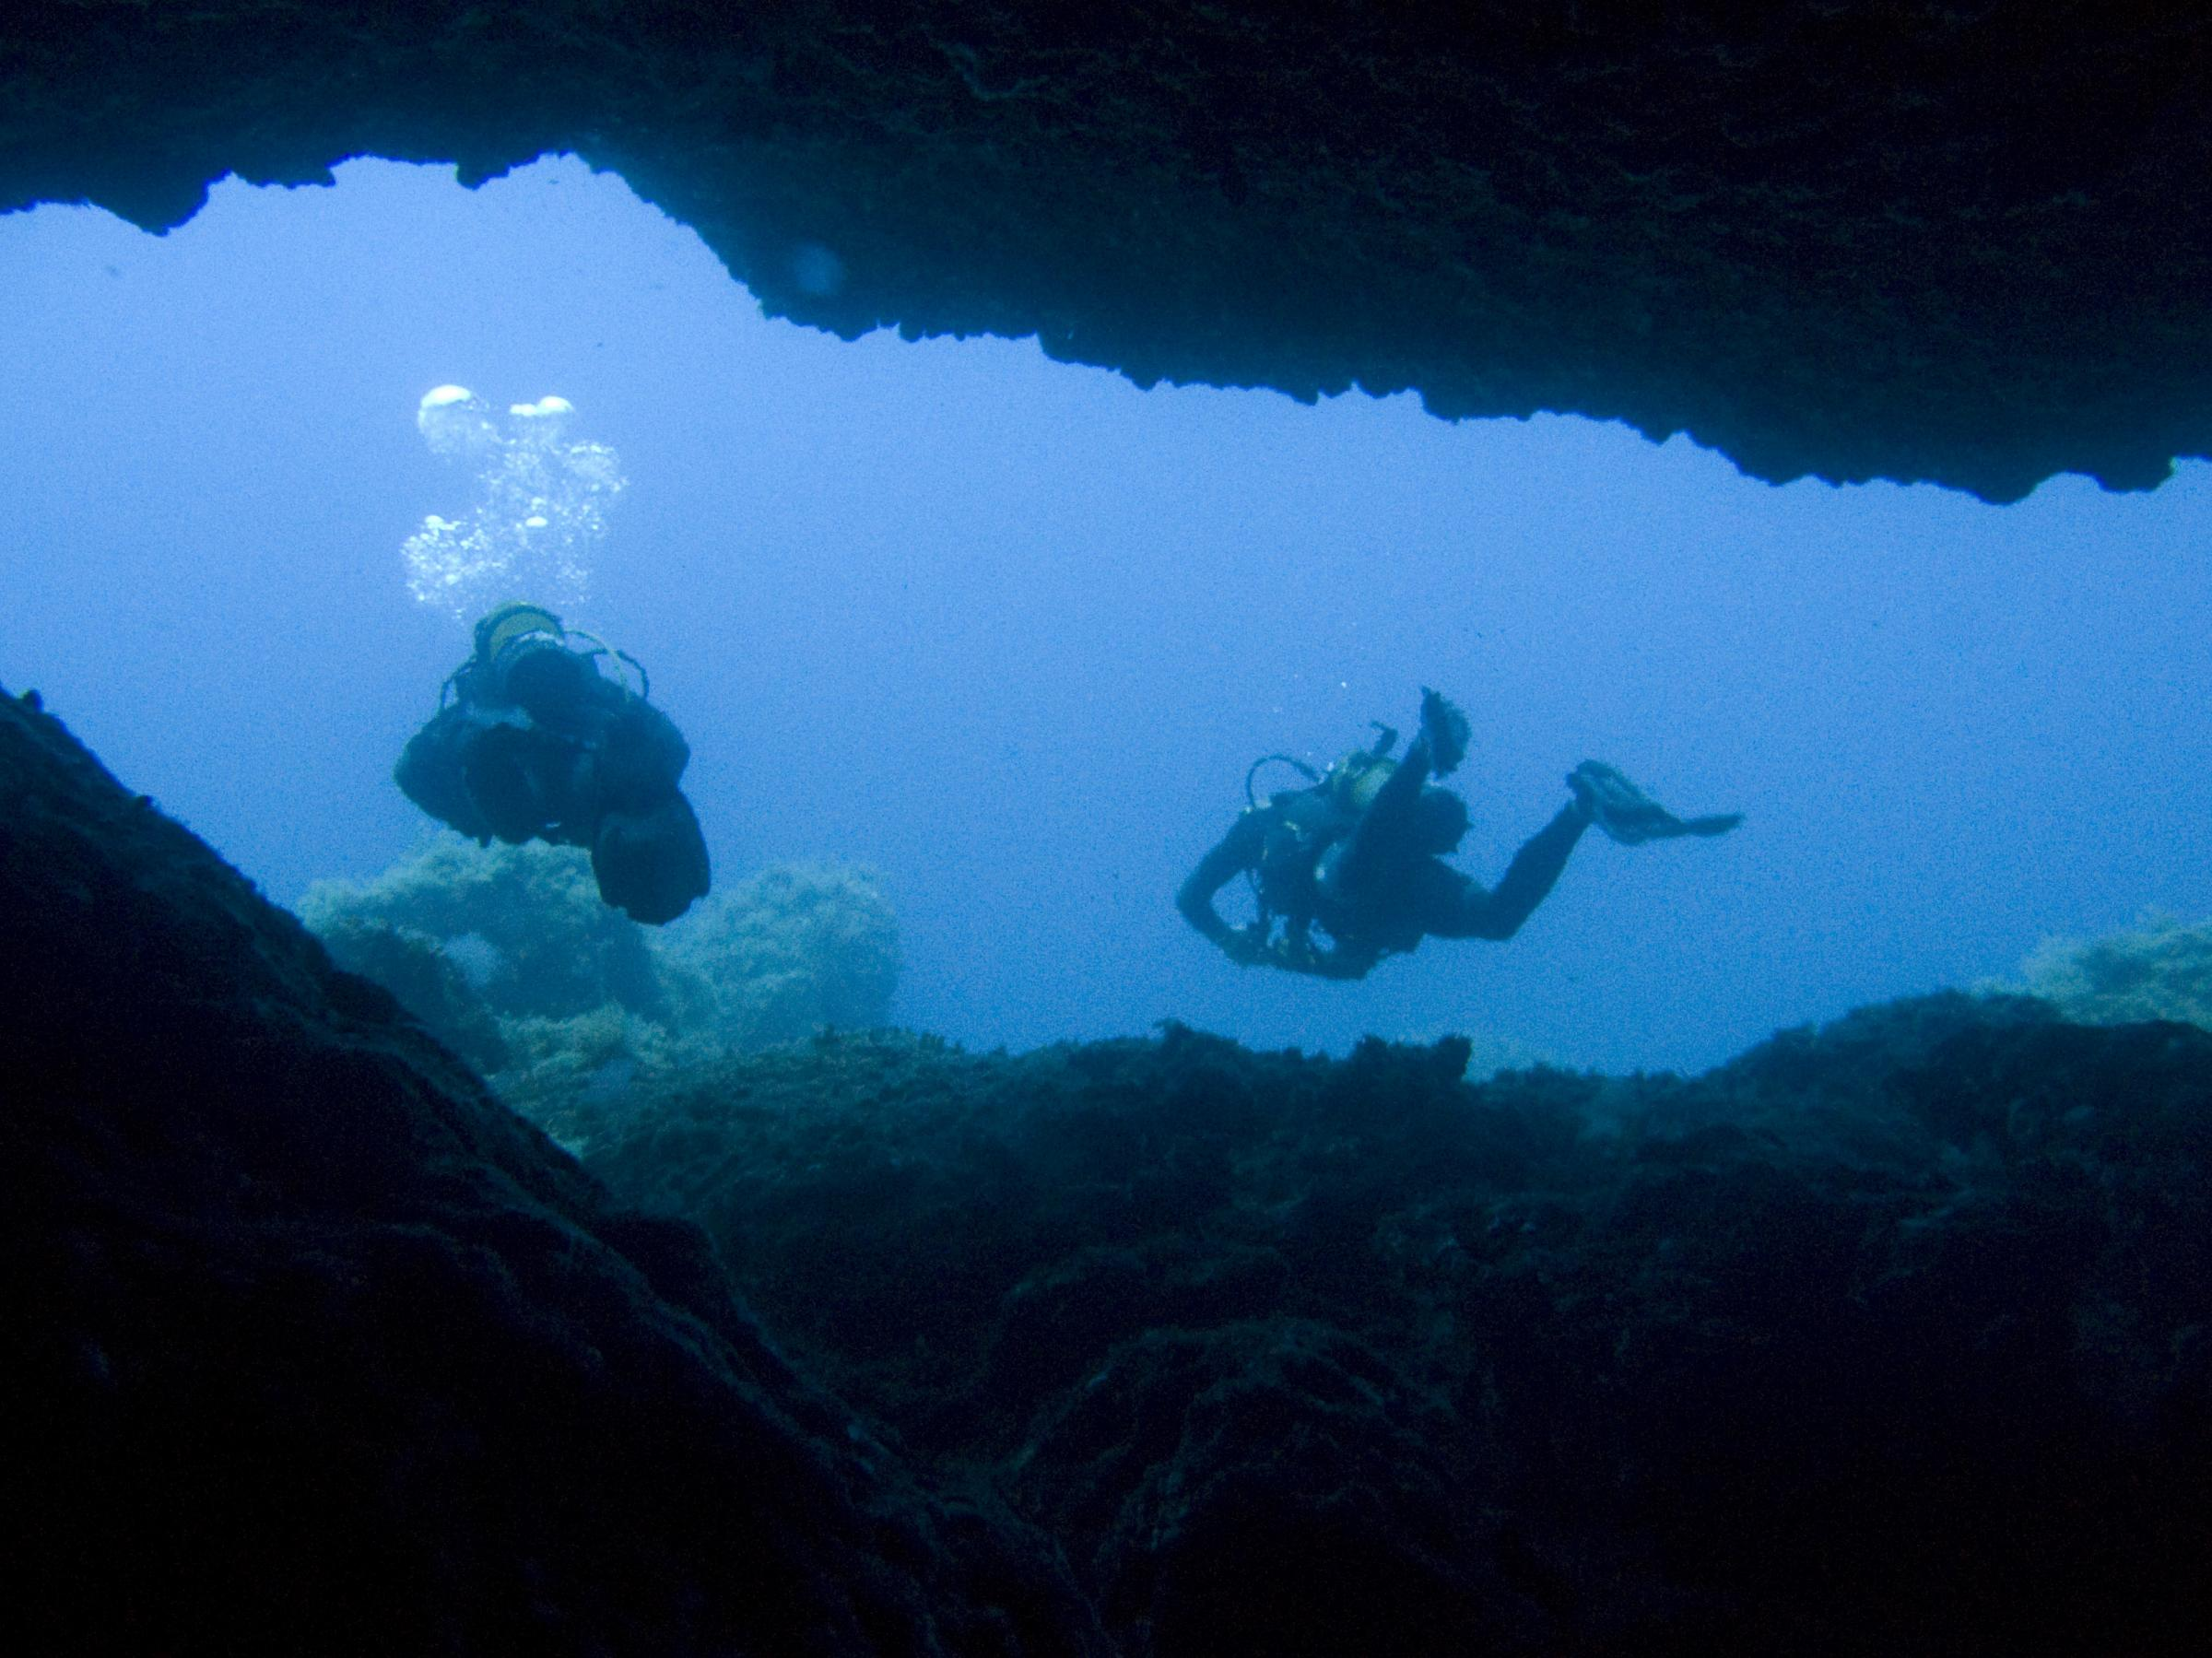 Divers at the Lantern Point